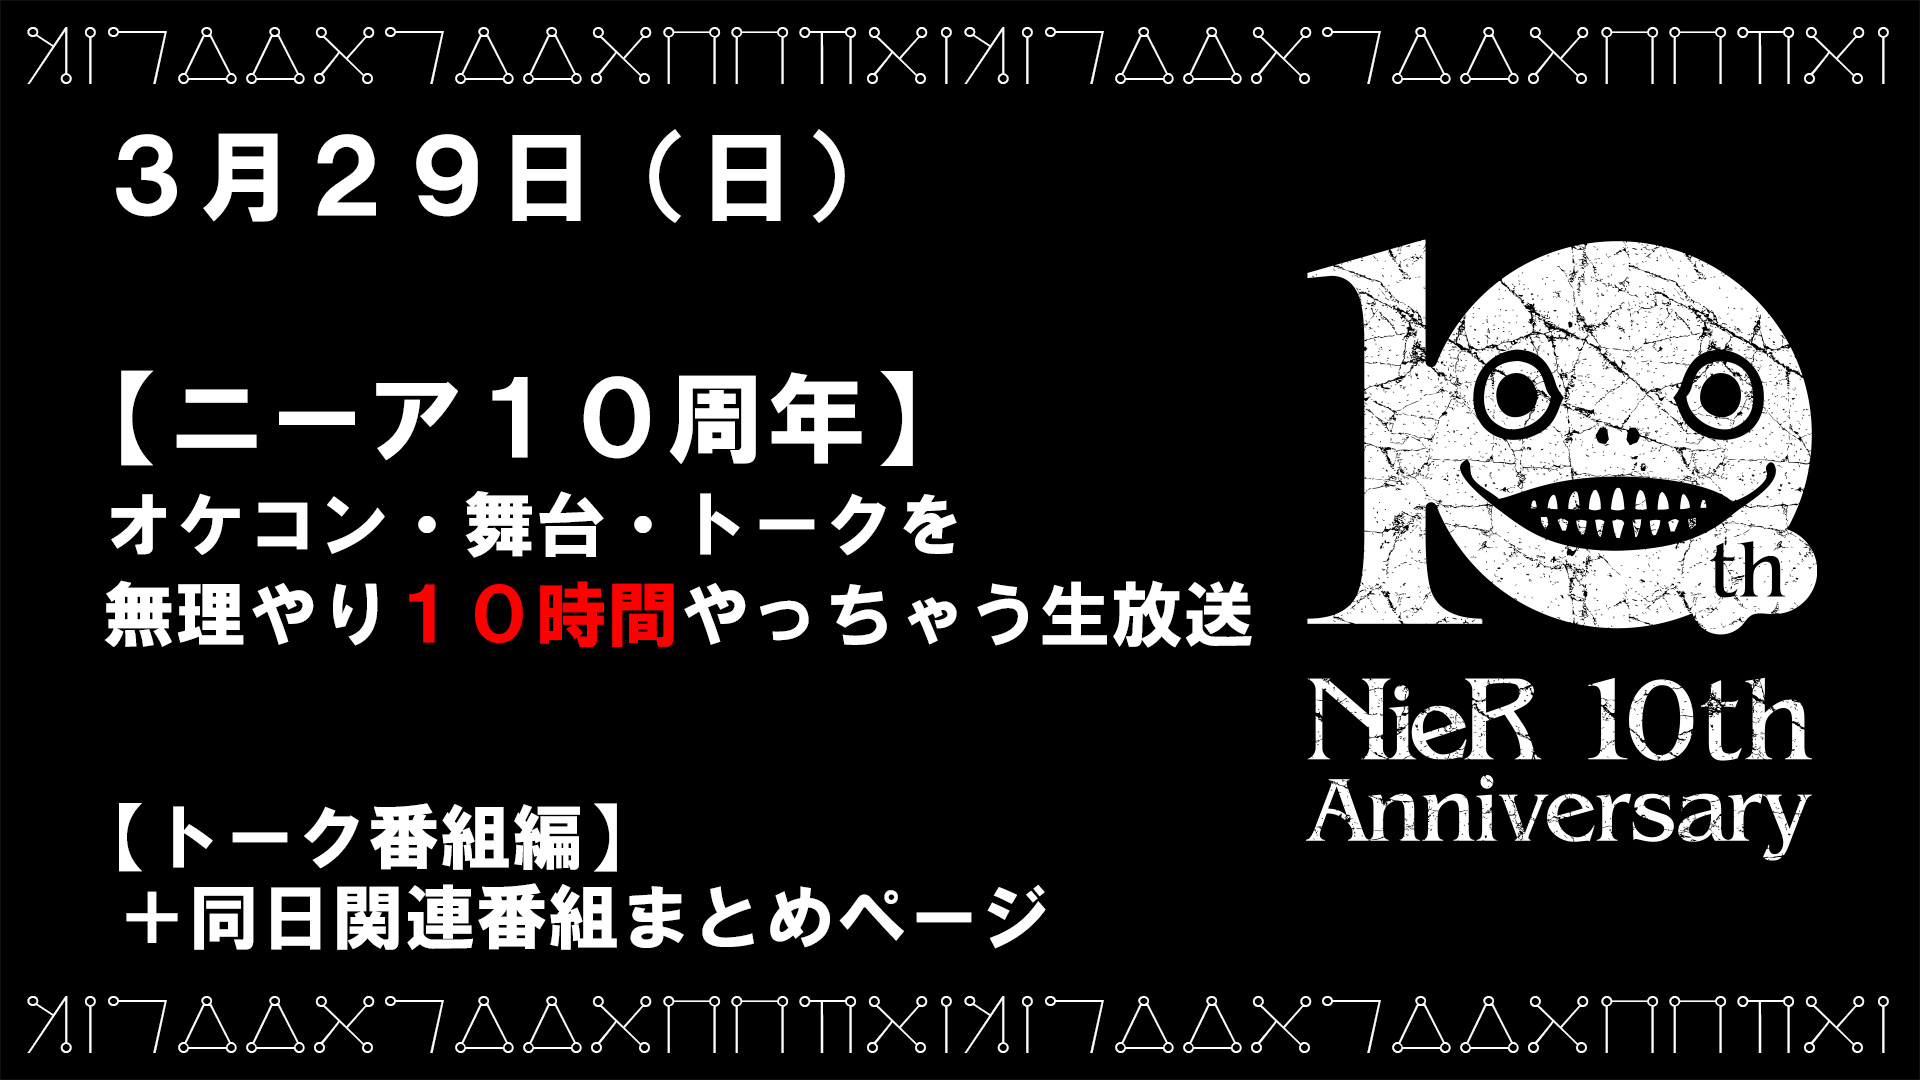 NieR 10th Anniversary Live Stream